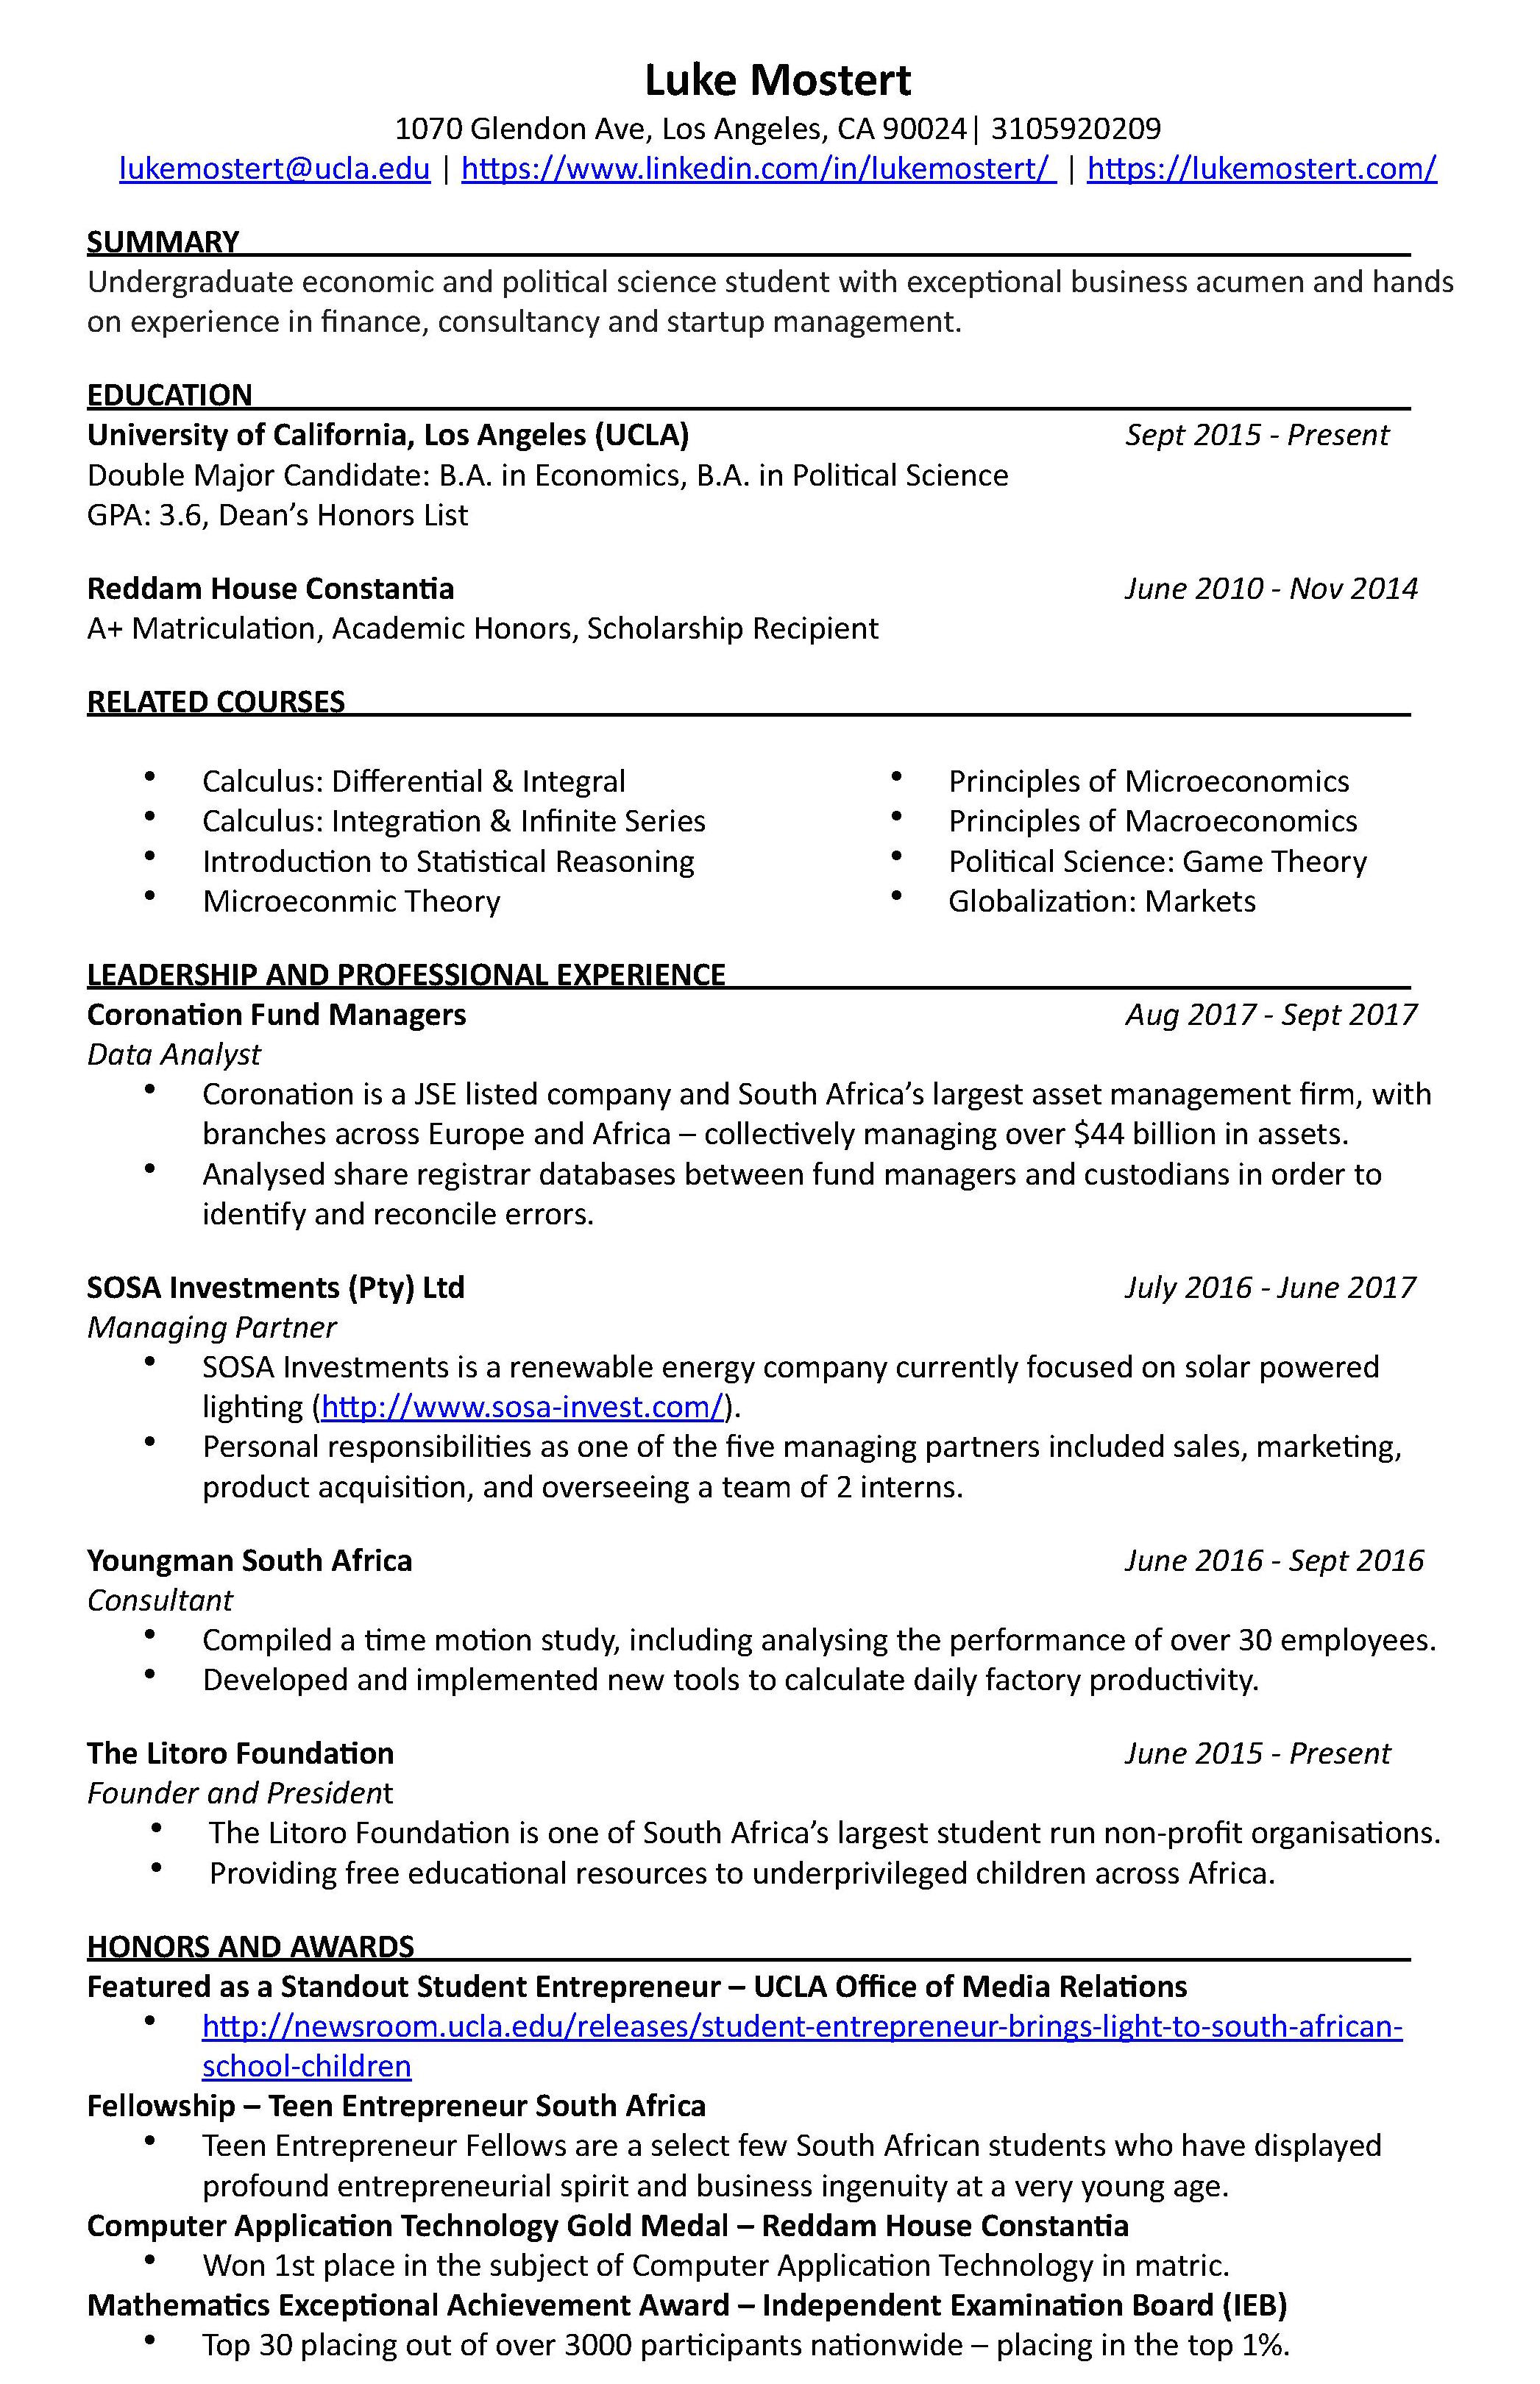 Resume Of An Entrepreneur Resume Of Luke Mostert Luke Mostert